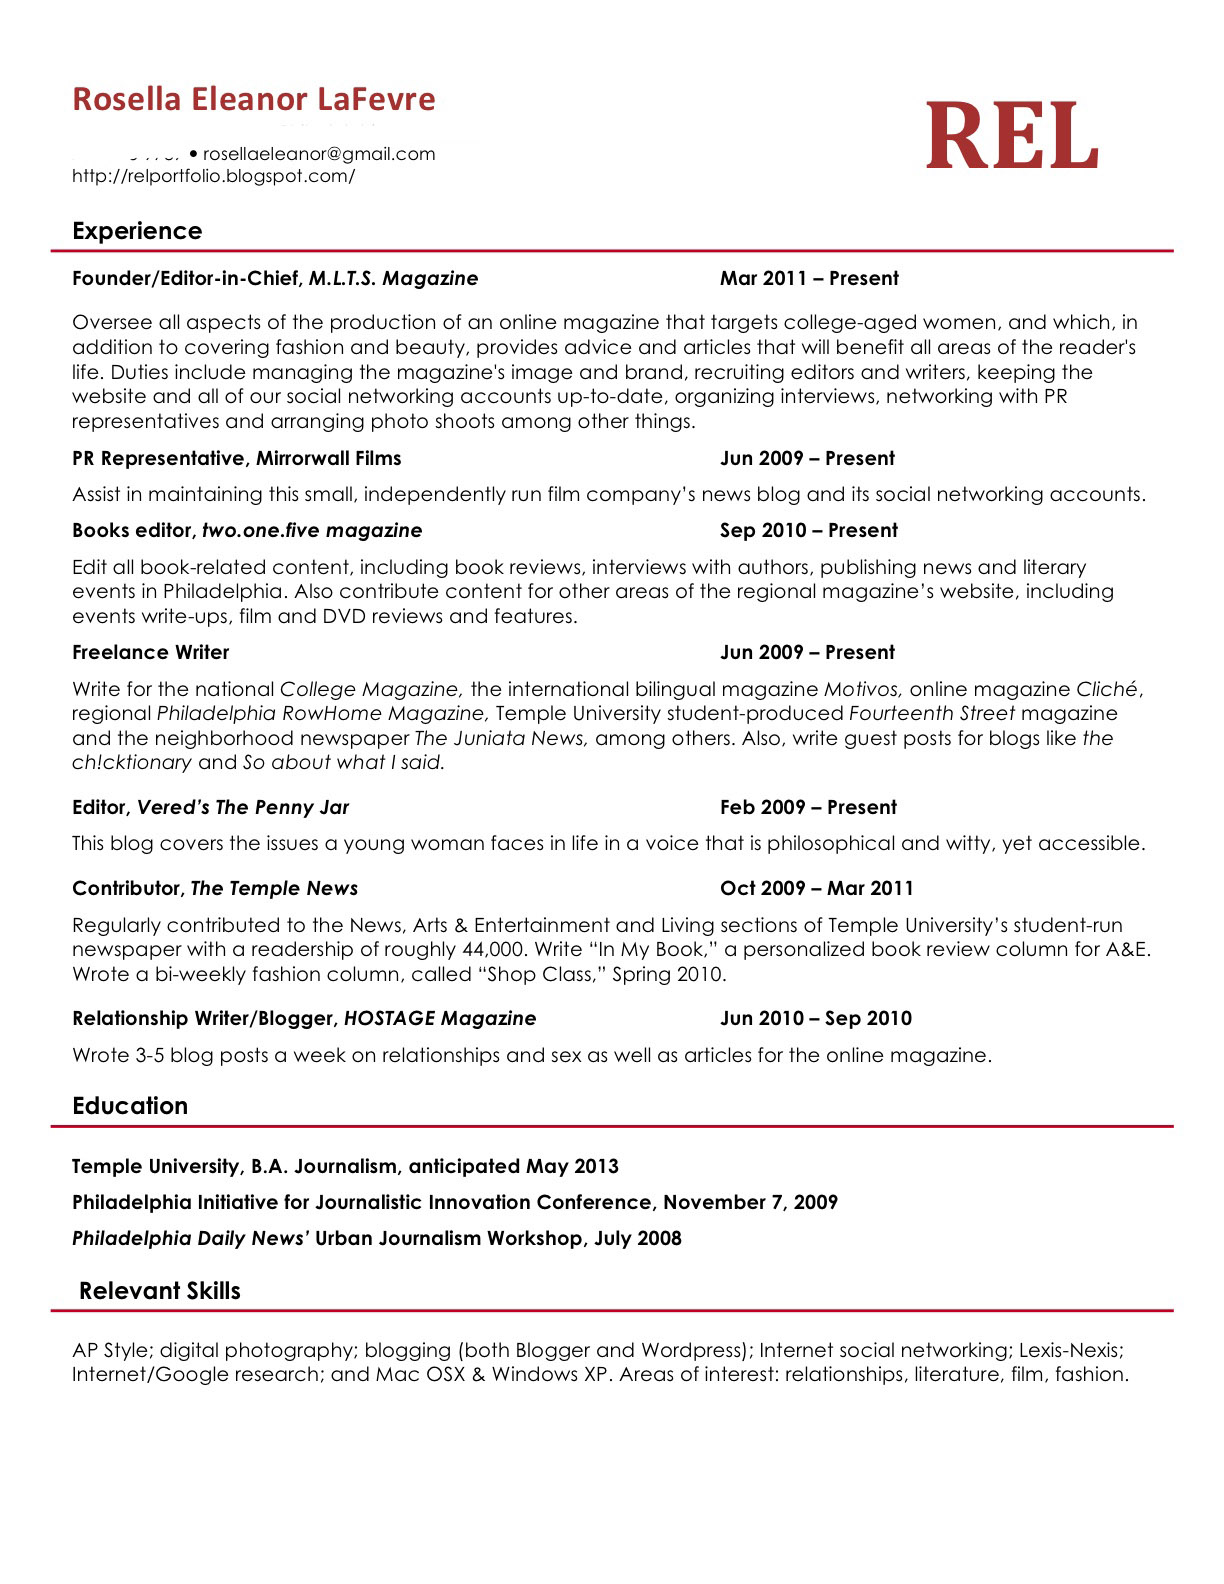 basic resume template copy paste resume examples and writing tips basic resume template copy paste basic resume template printable templates copy resume templates professional esthetician